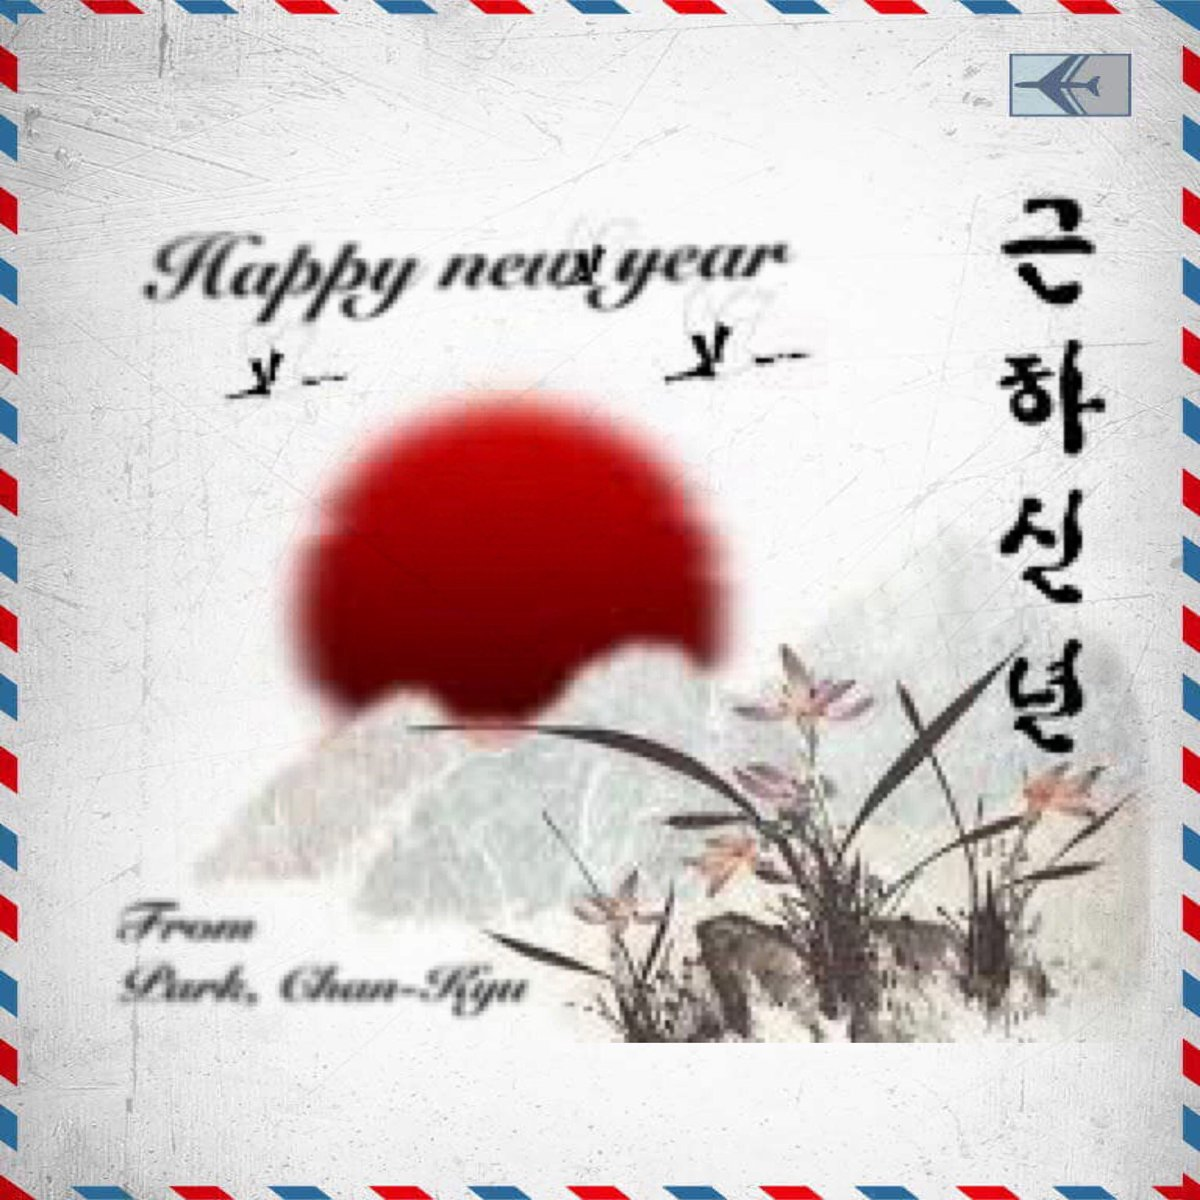 """Dear my lovely friends   """"HAPPY NEW YEAR""""  I wish you a happy and prosperous New Year.  we hope you will have nothing but joy and happiness in your life.  with all the best wish! https://t.co/TVnR3rrony"""